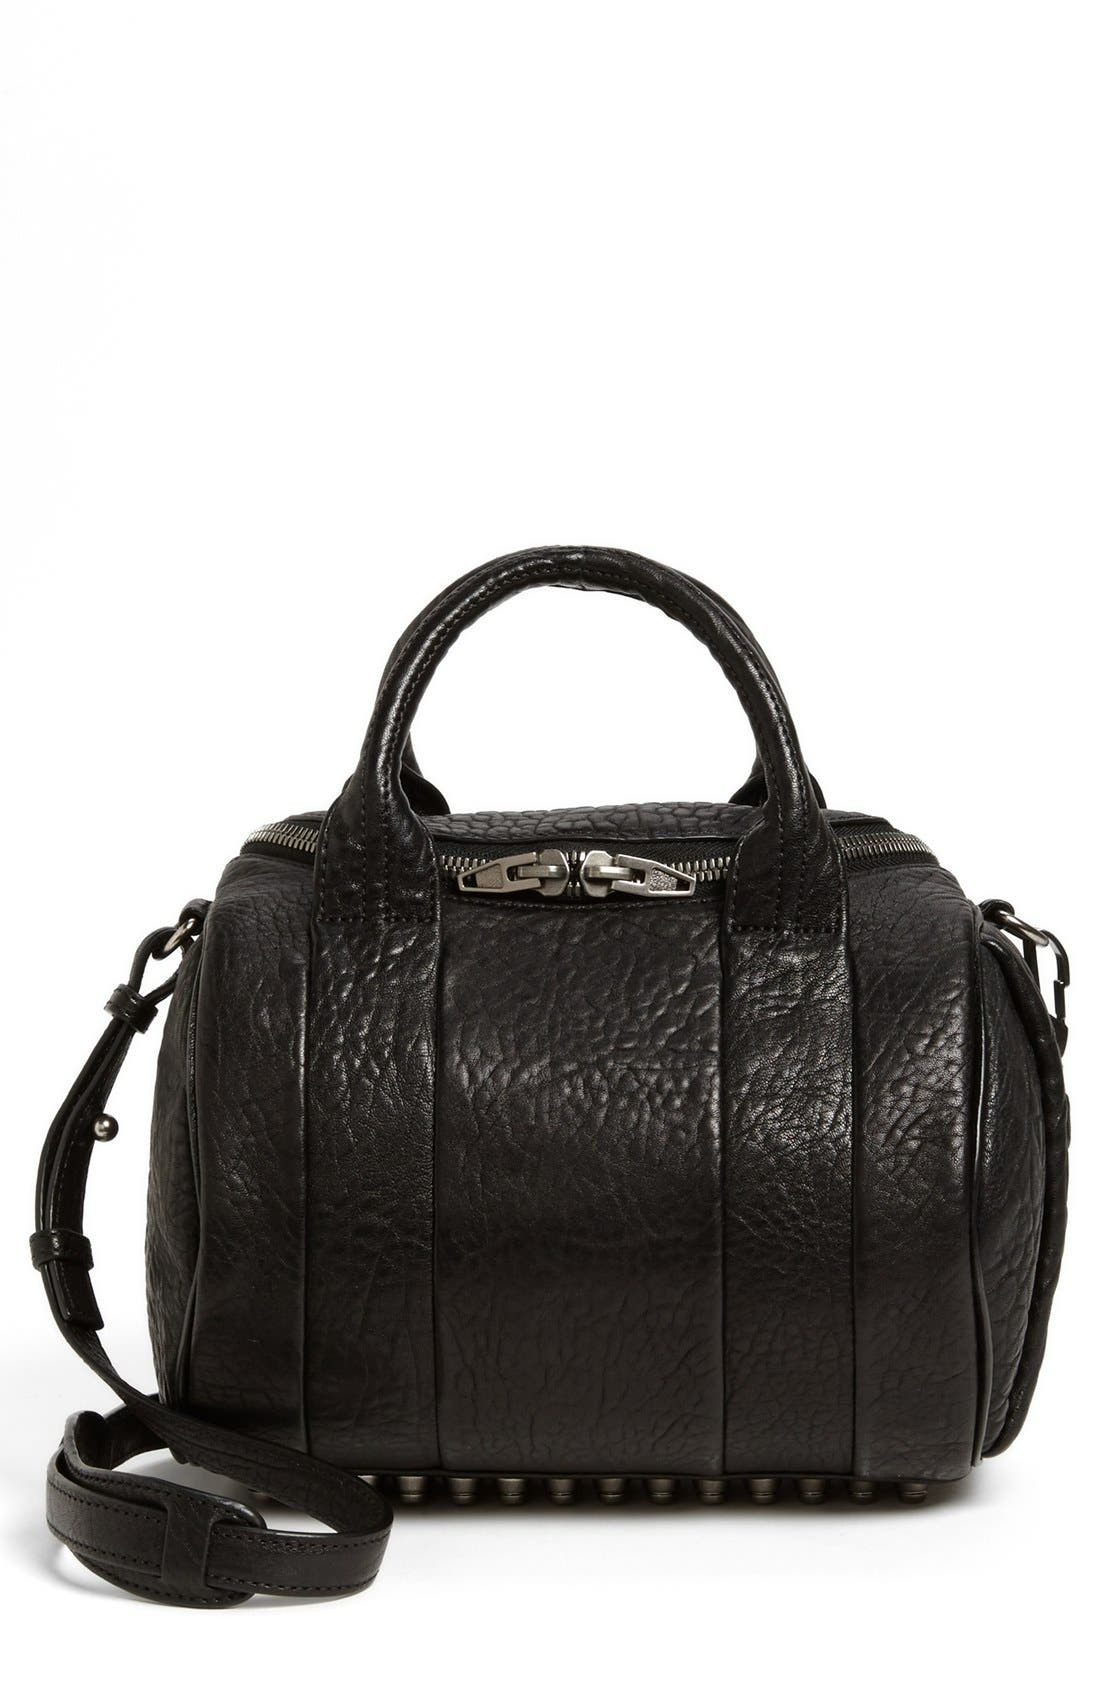 'Rockie - Black Nickel' Leather Crossbody Satchel,                             Main thumbnail 1, color,                             001